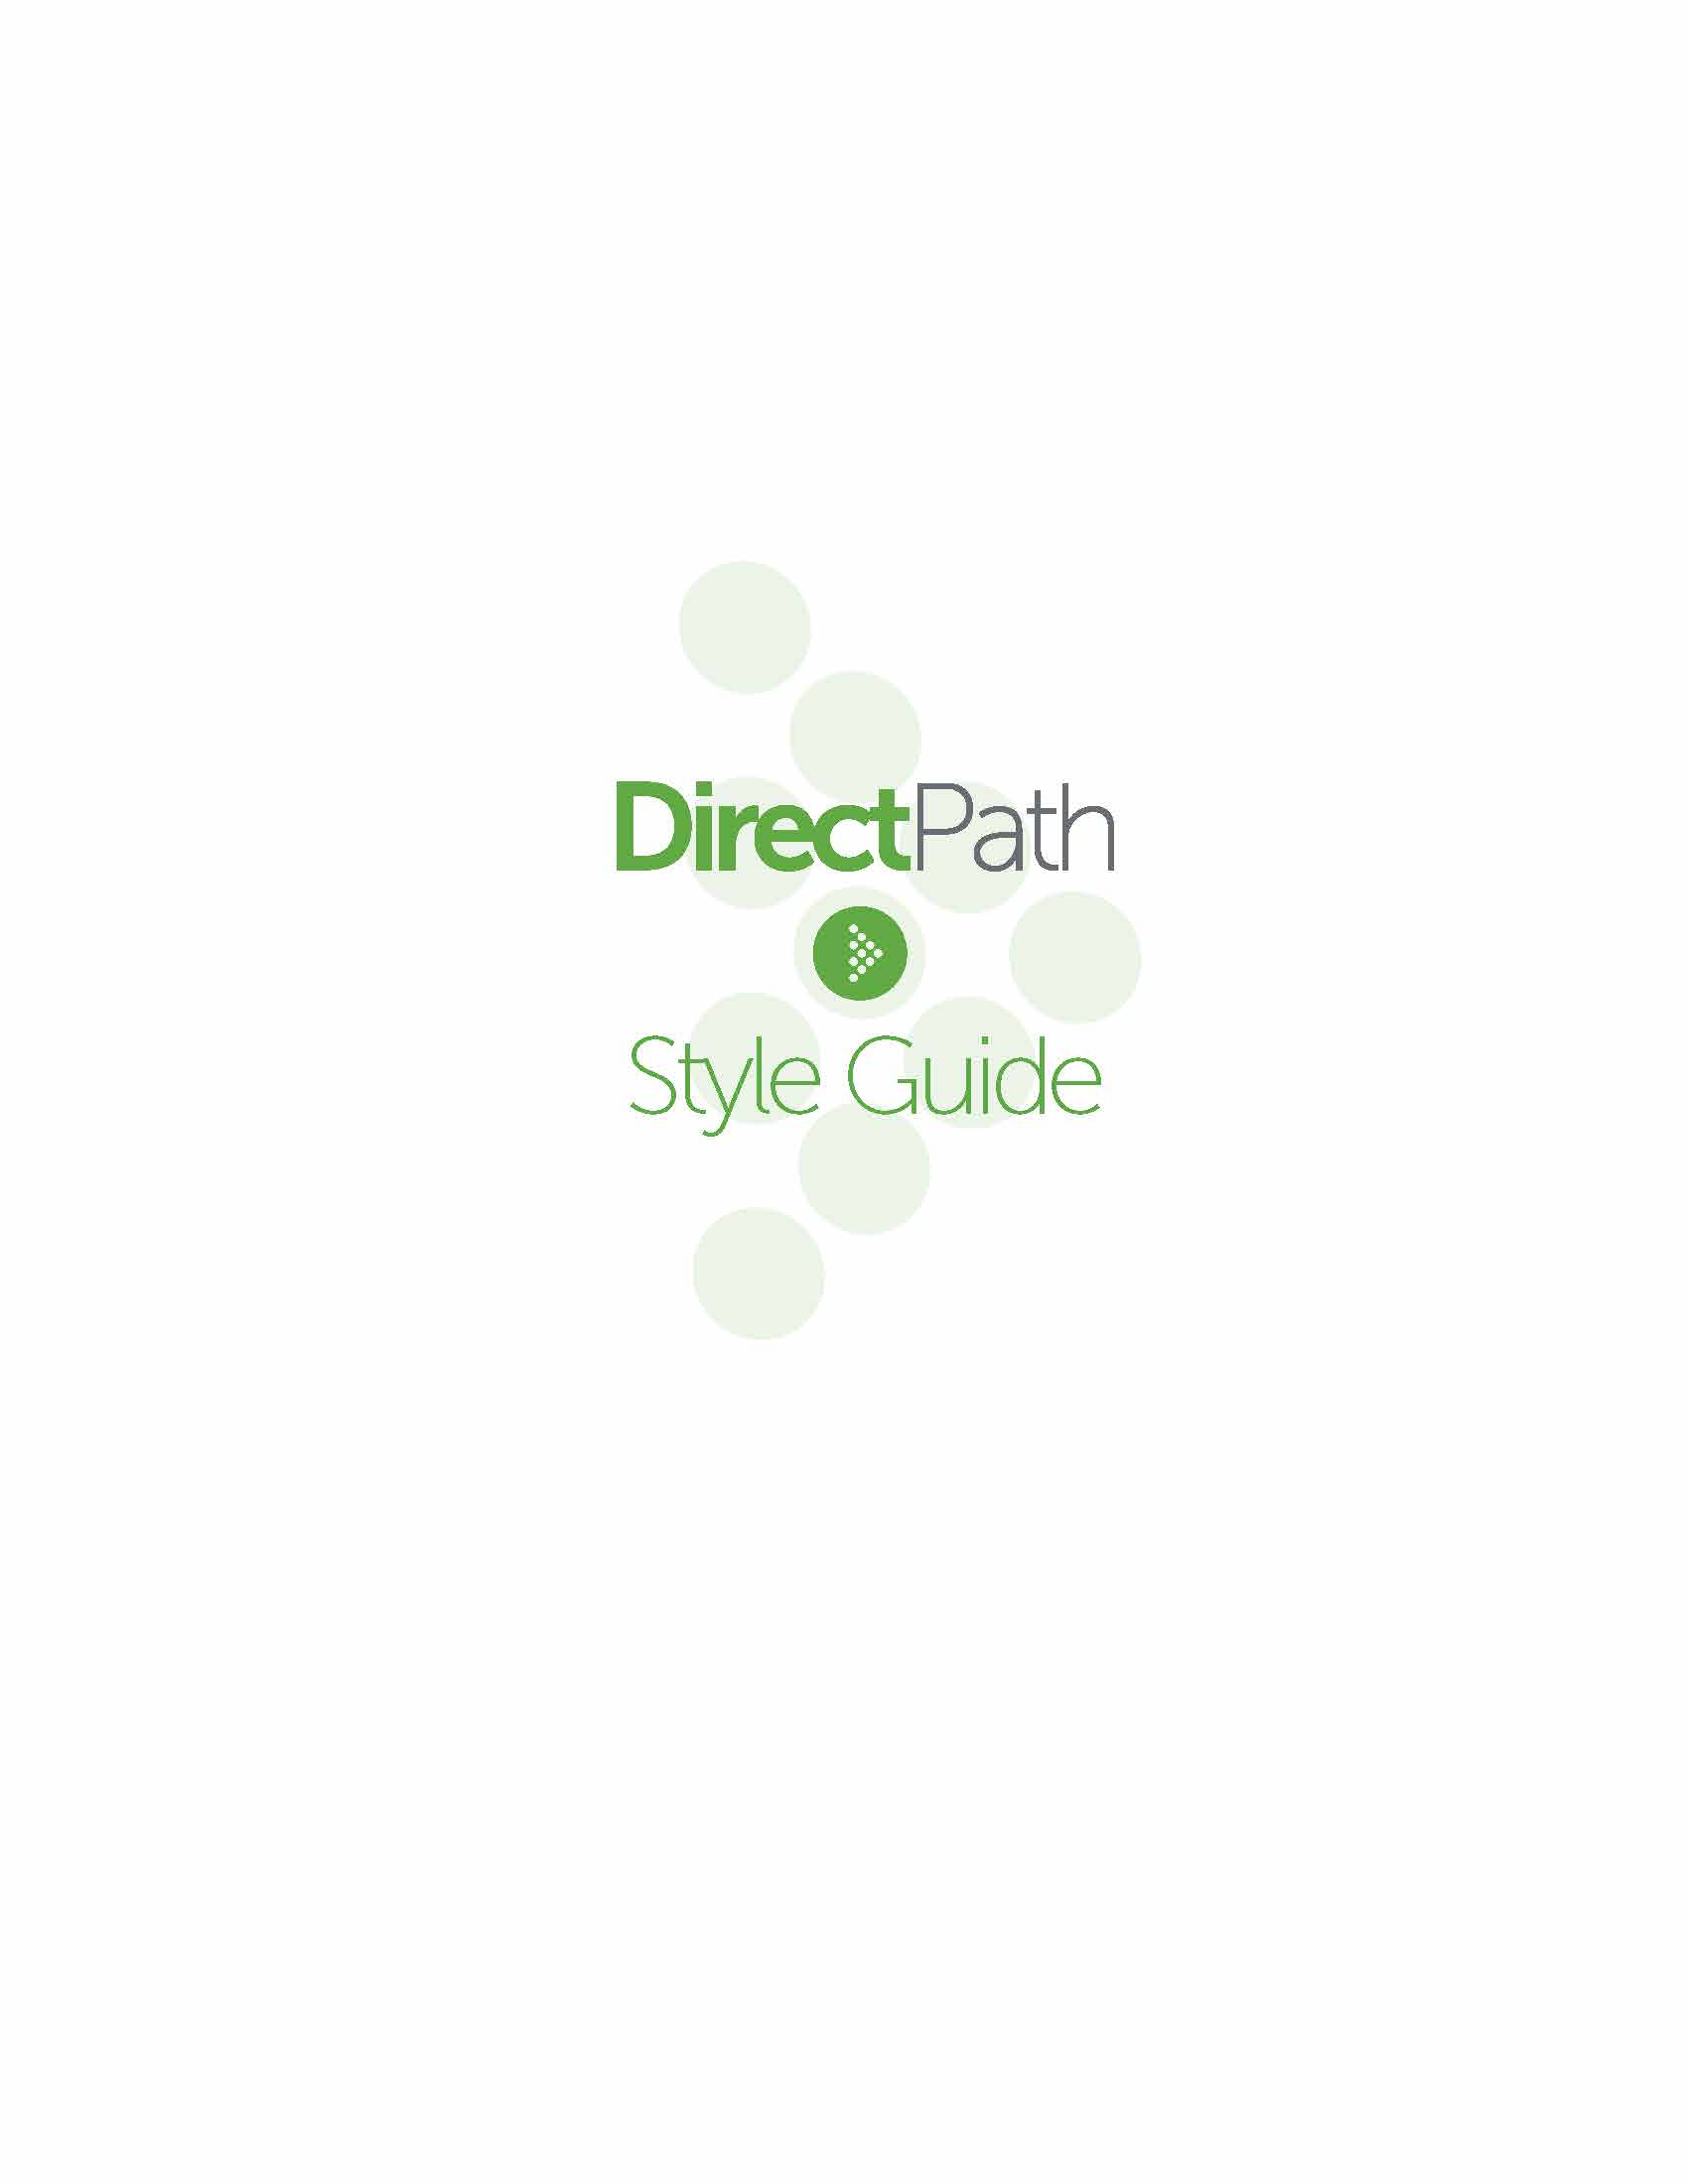 Direct Path Style Guide 1.jpg